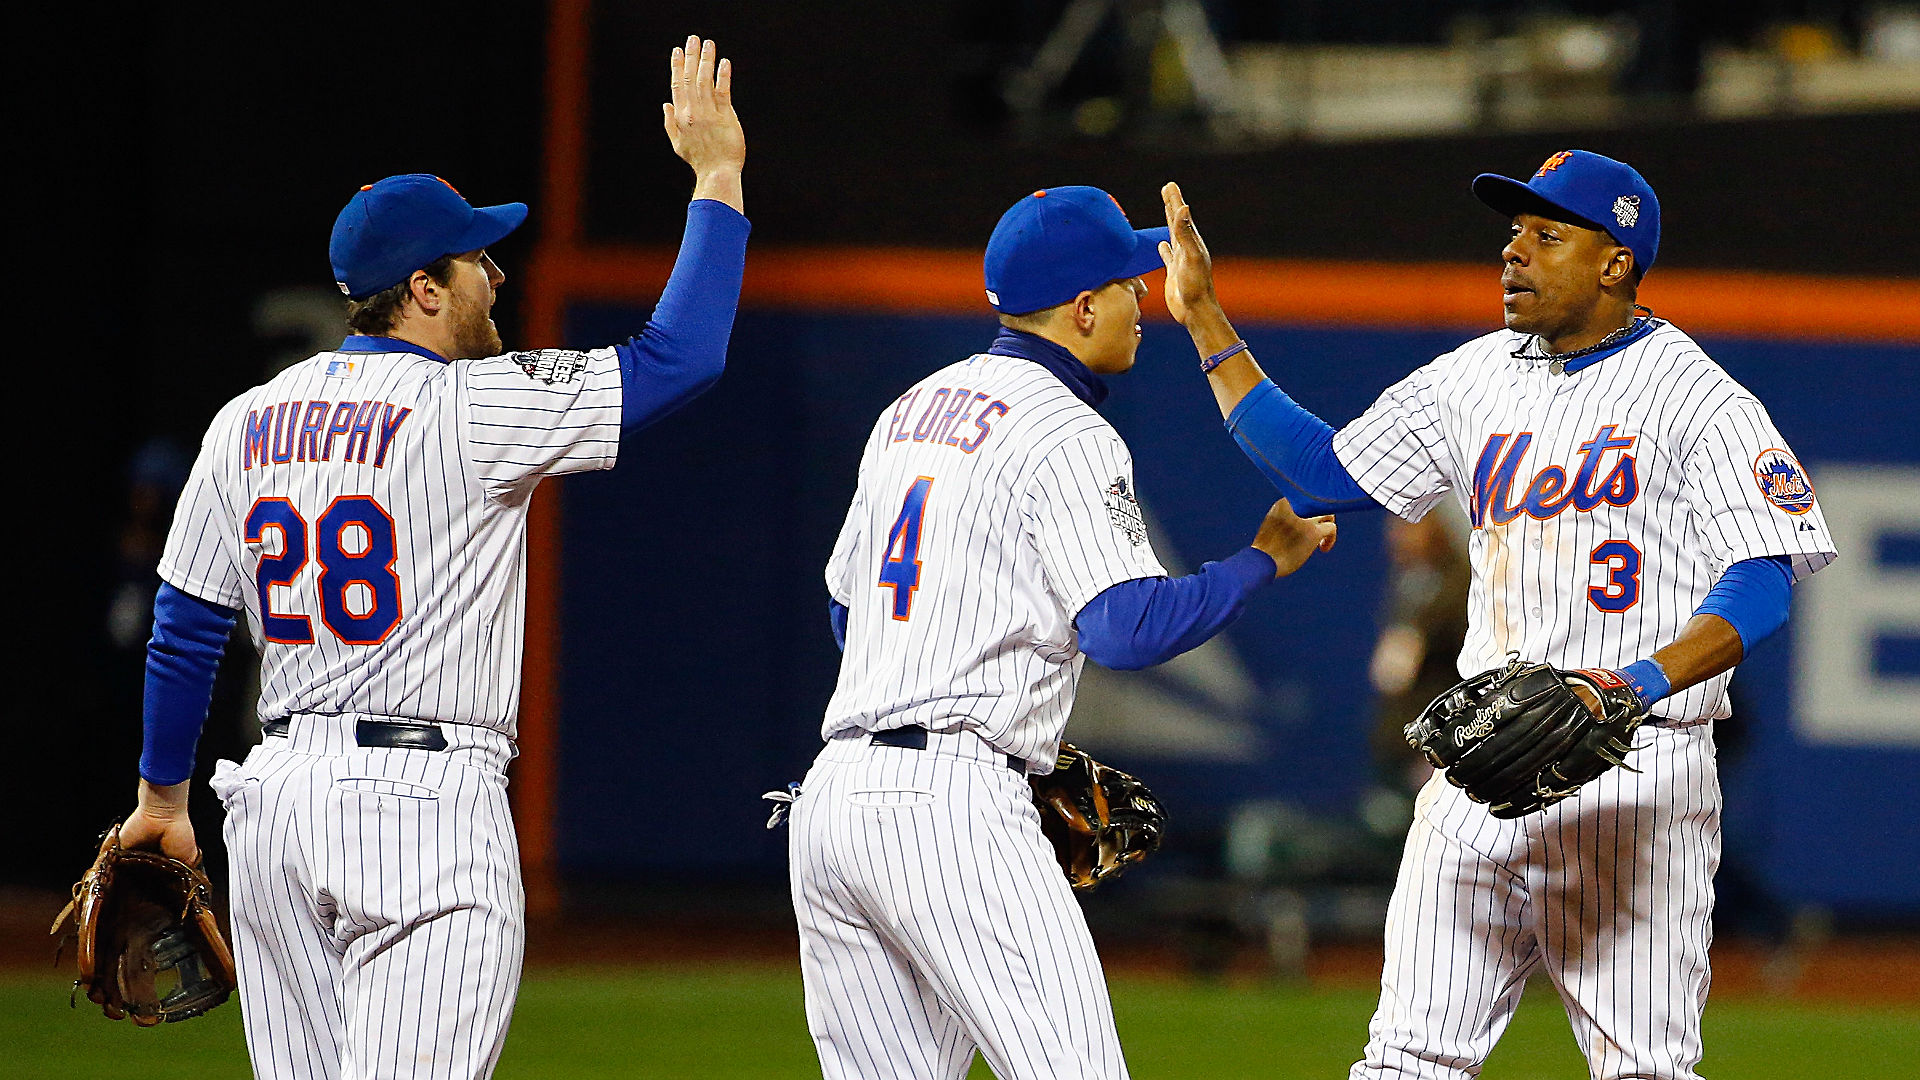 World Series Game 4 odds and pick - Mets favored to even the series